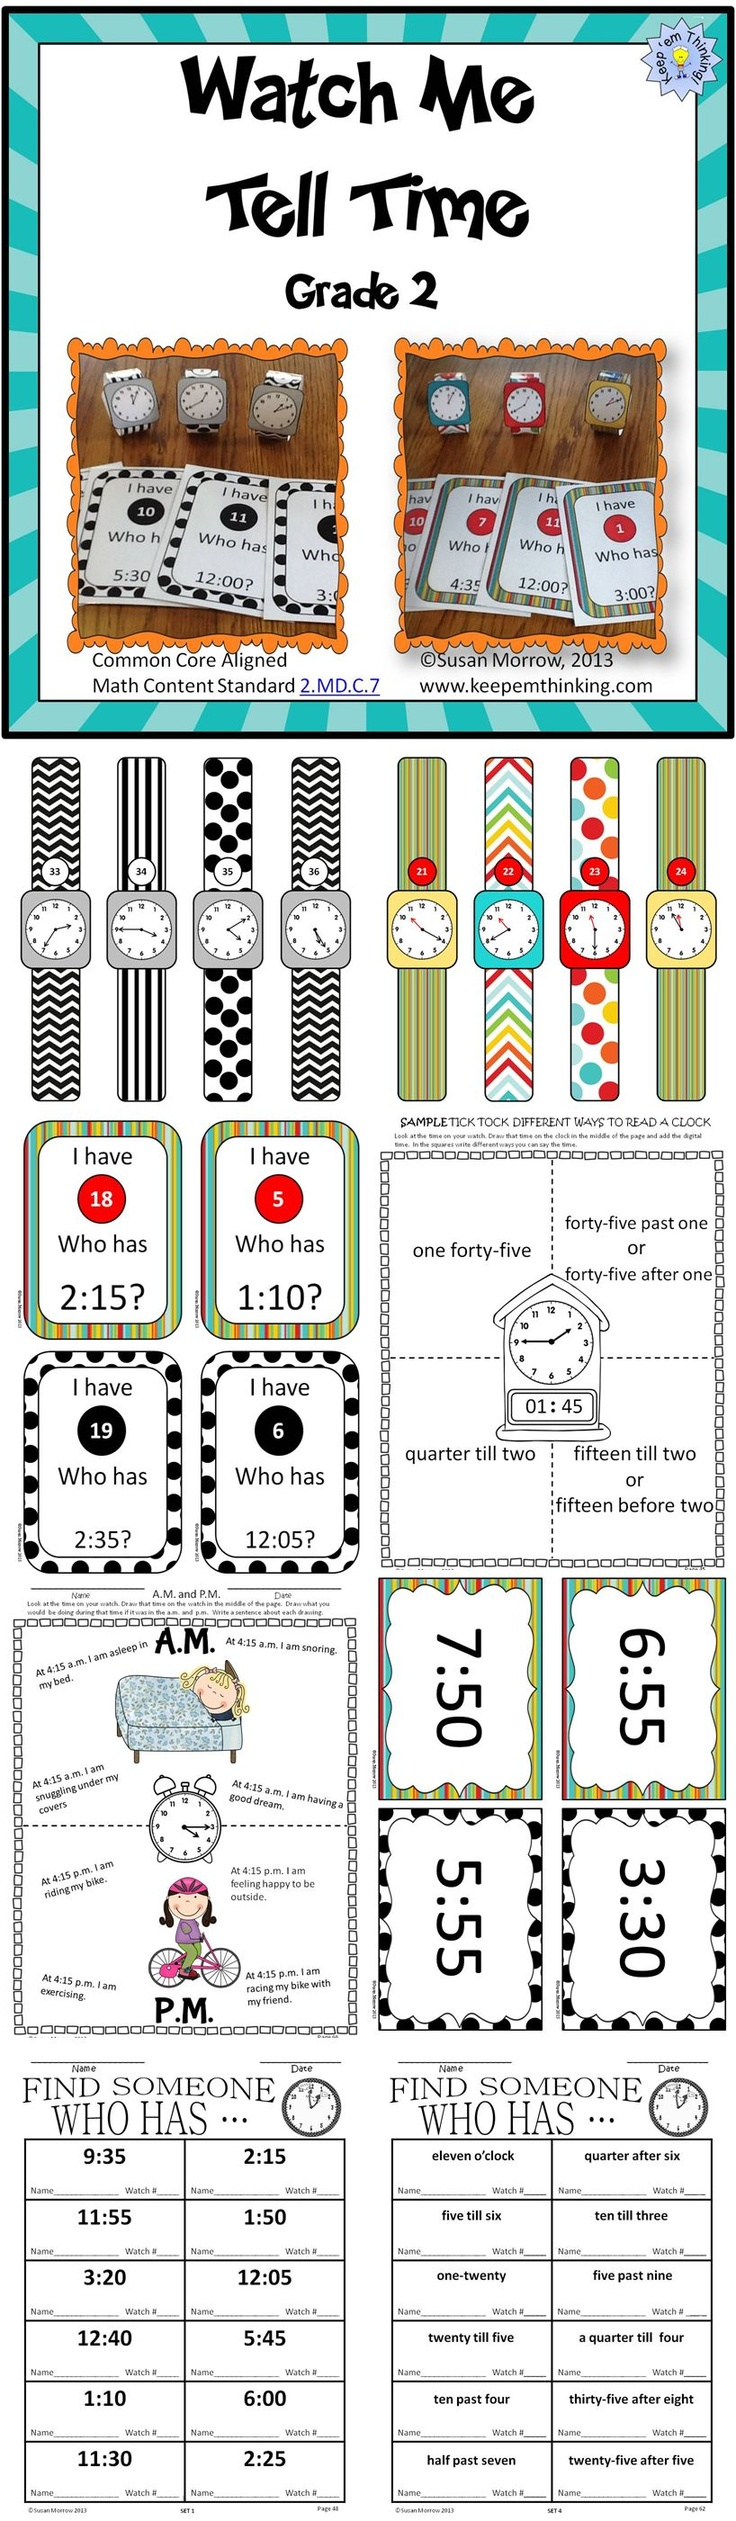 Watch Me Tell Time uses individual student watches to get your students up and moving and actively involved in learning to tell time to the nearest five minutes. The unit includes 48 individual watches for you to print out, laminate and have students wear during activities to teach time to 5 minute intervals. The watches are available in both color and black and white to save printing costs.